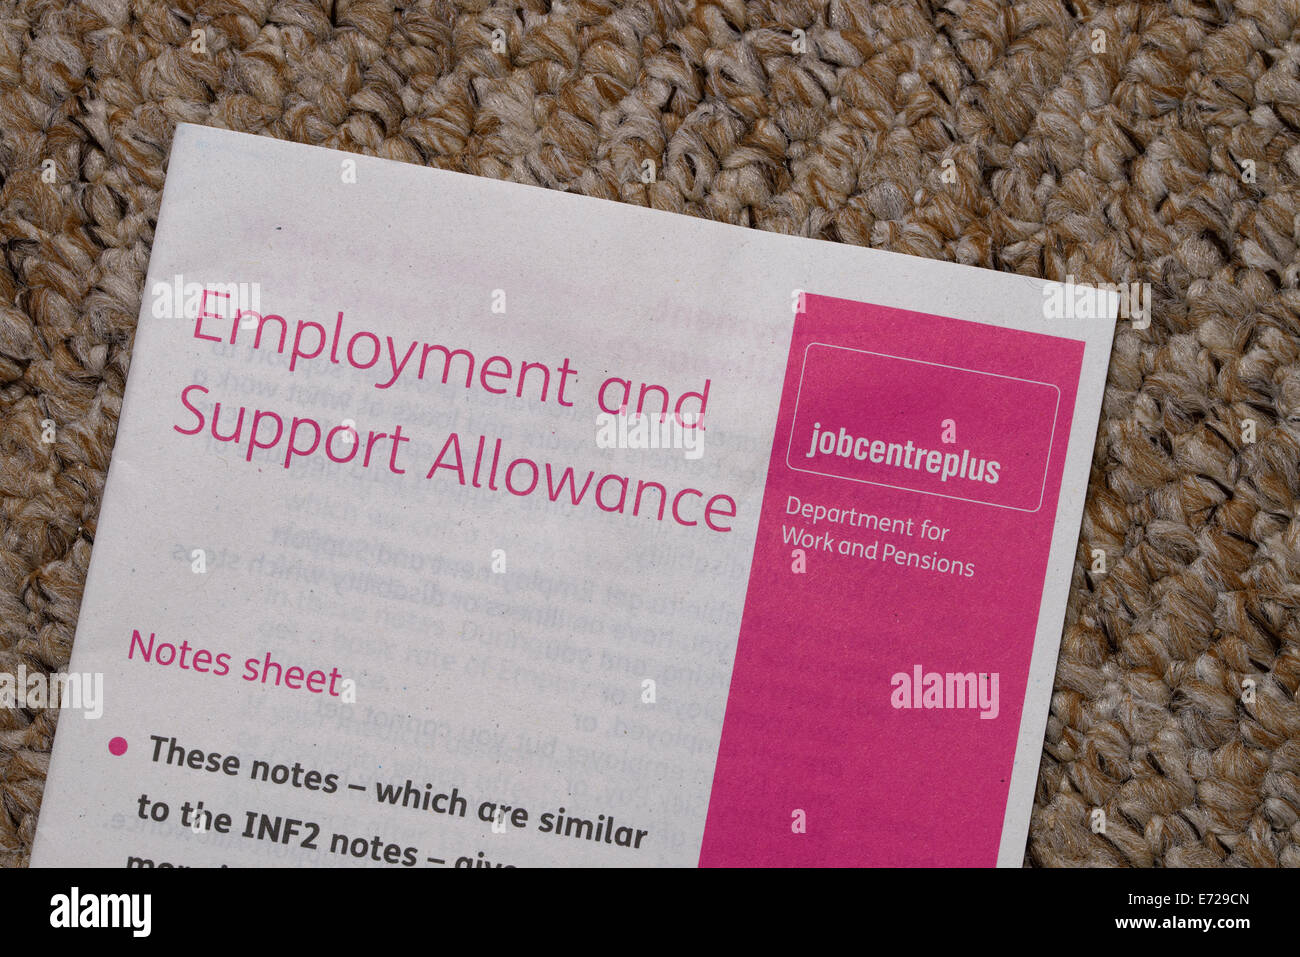 Notes sheet to accompany an employment and support allowance esa notes sheet to accompany an employment and support allowance esa application form falaconquin